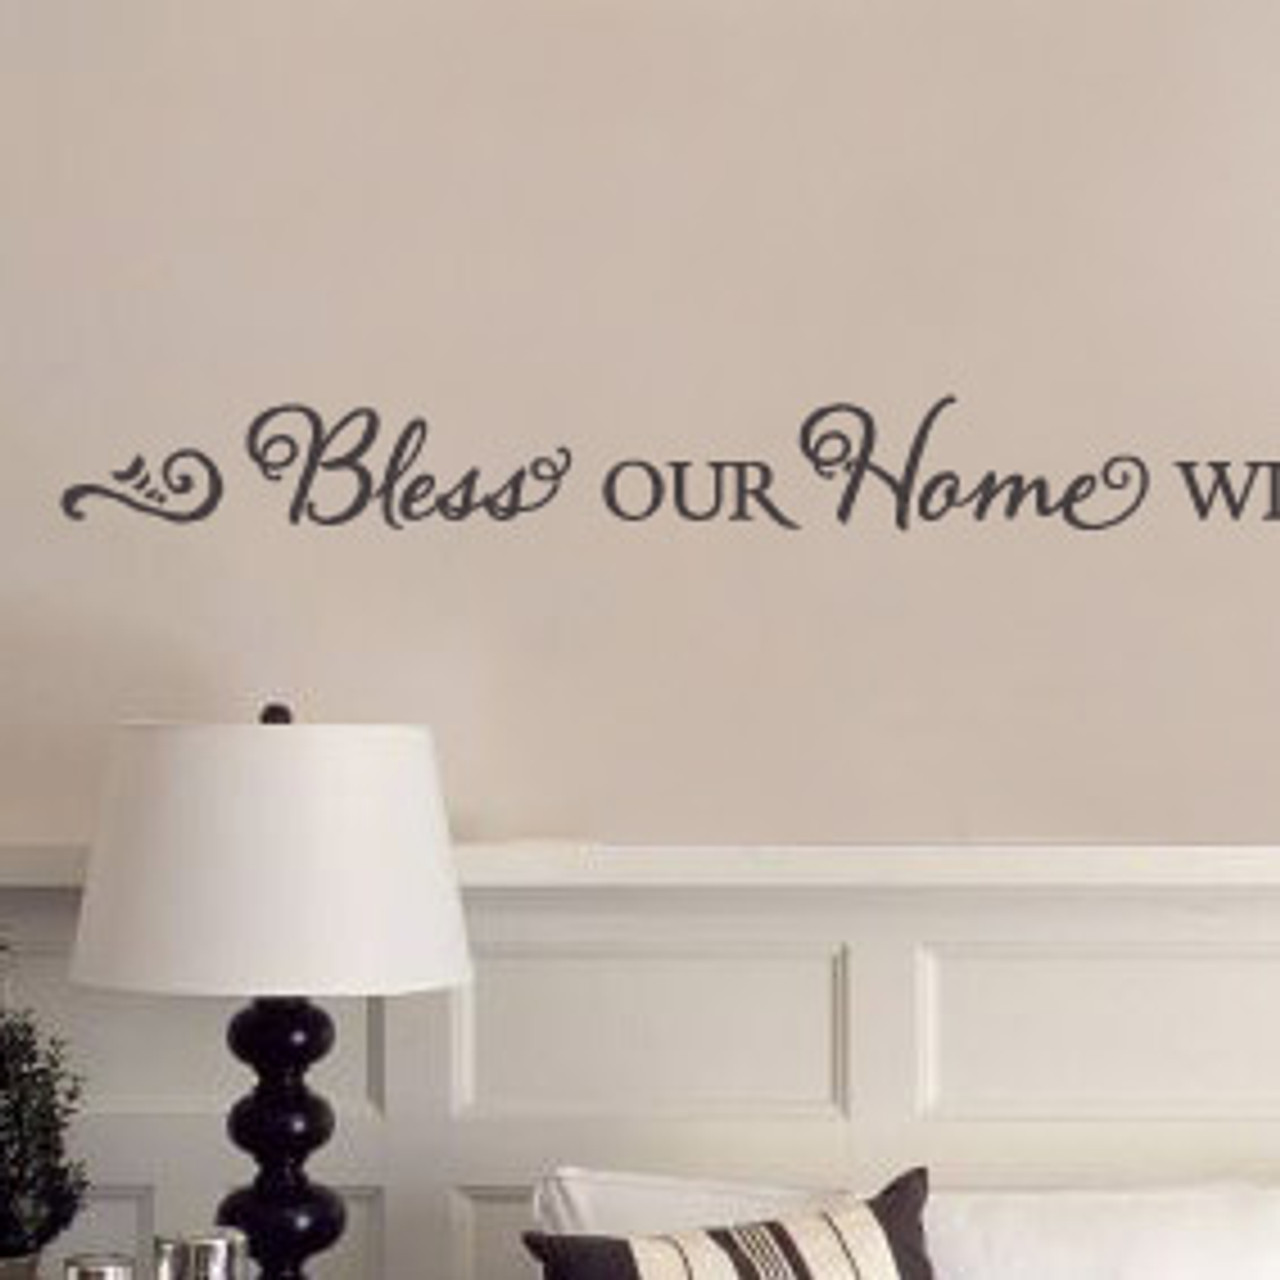 Bless Our Home With Love Laughter Wall Quote Decalmywall Com